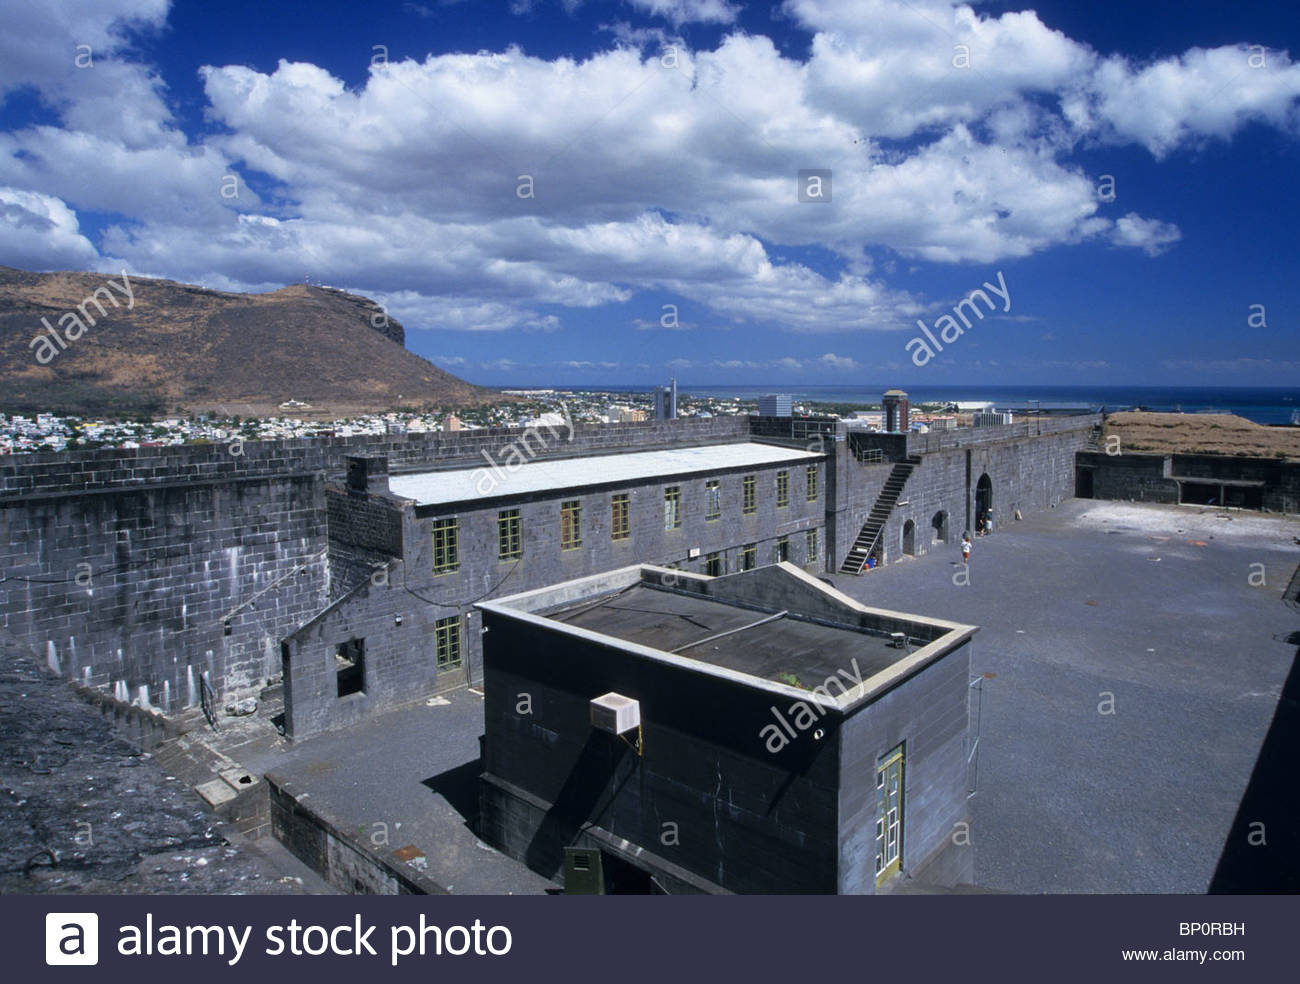 Fort Adelaide Port Louis, Fort Adelaide also called